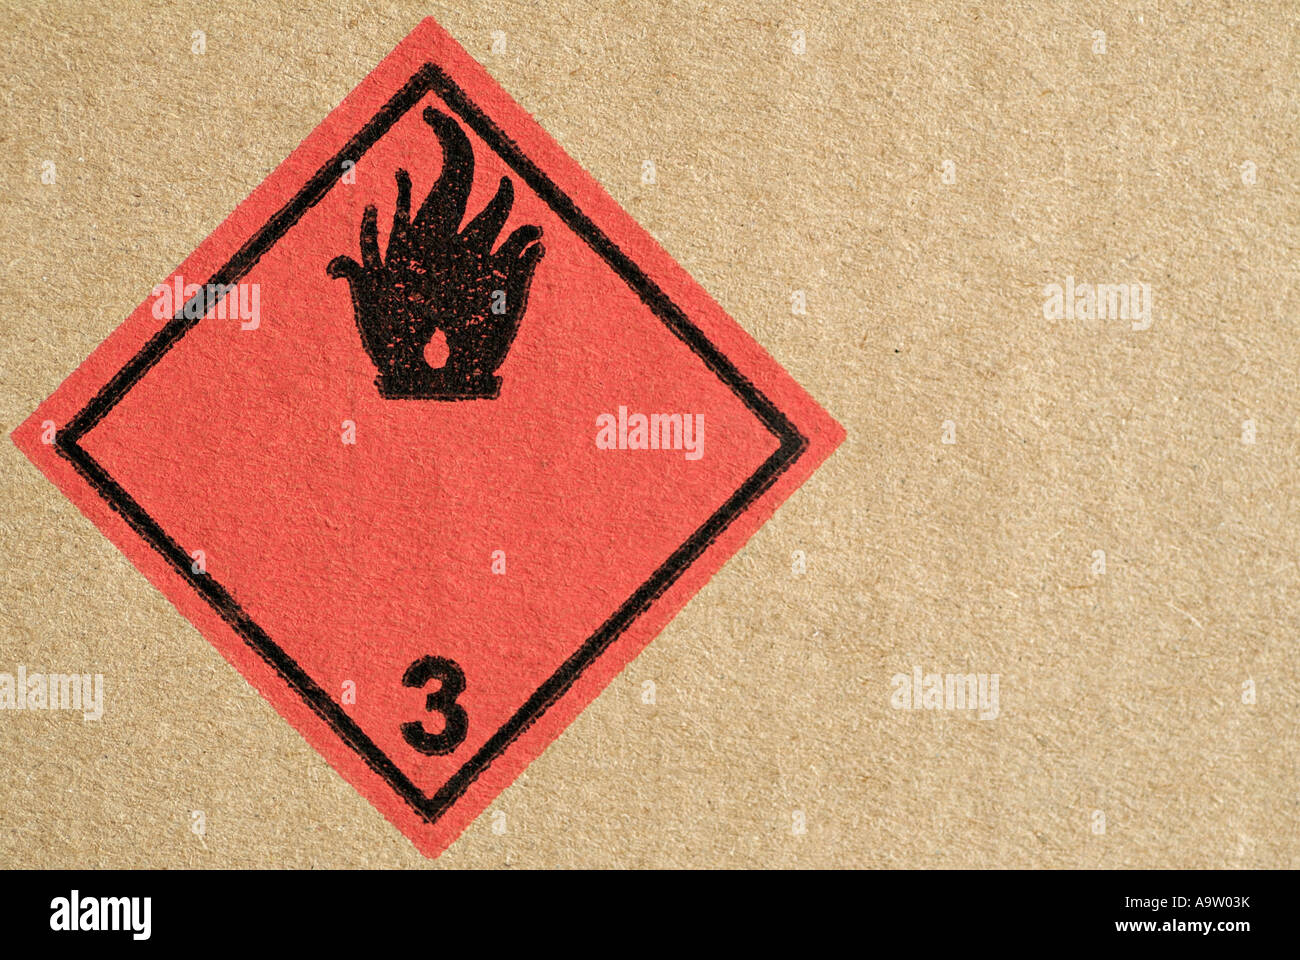 Fire hazard warning symbol on the side of a cardboard box stock fire hazard warning symbol on the side of a cardboard box biocorpaavc Gallery